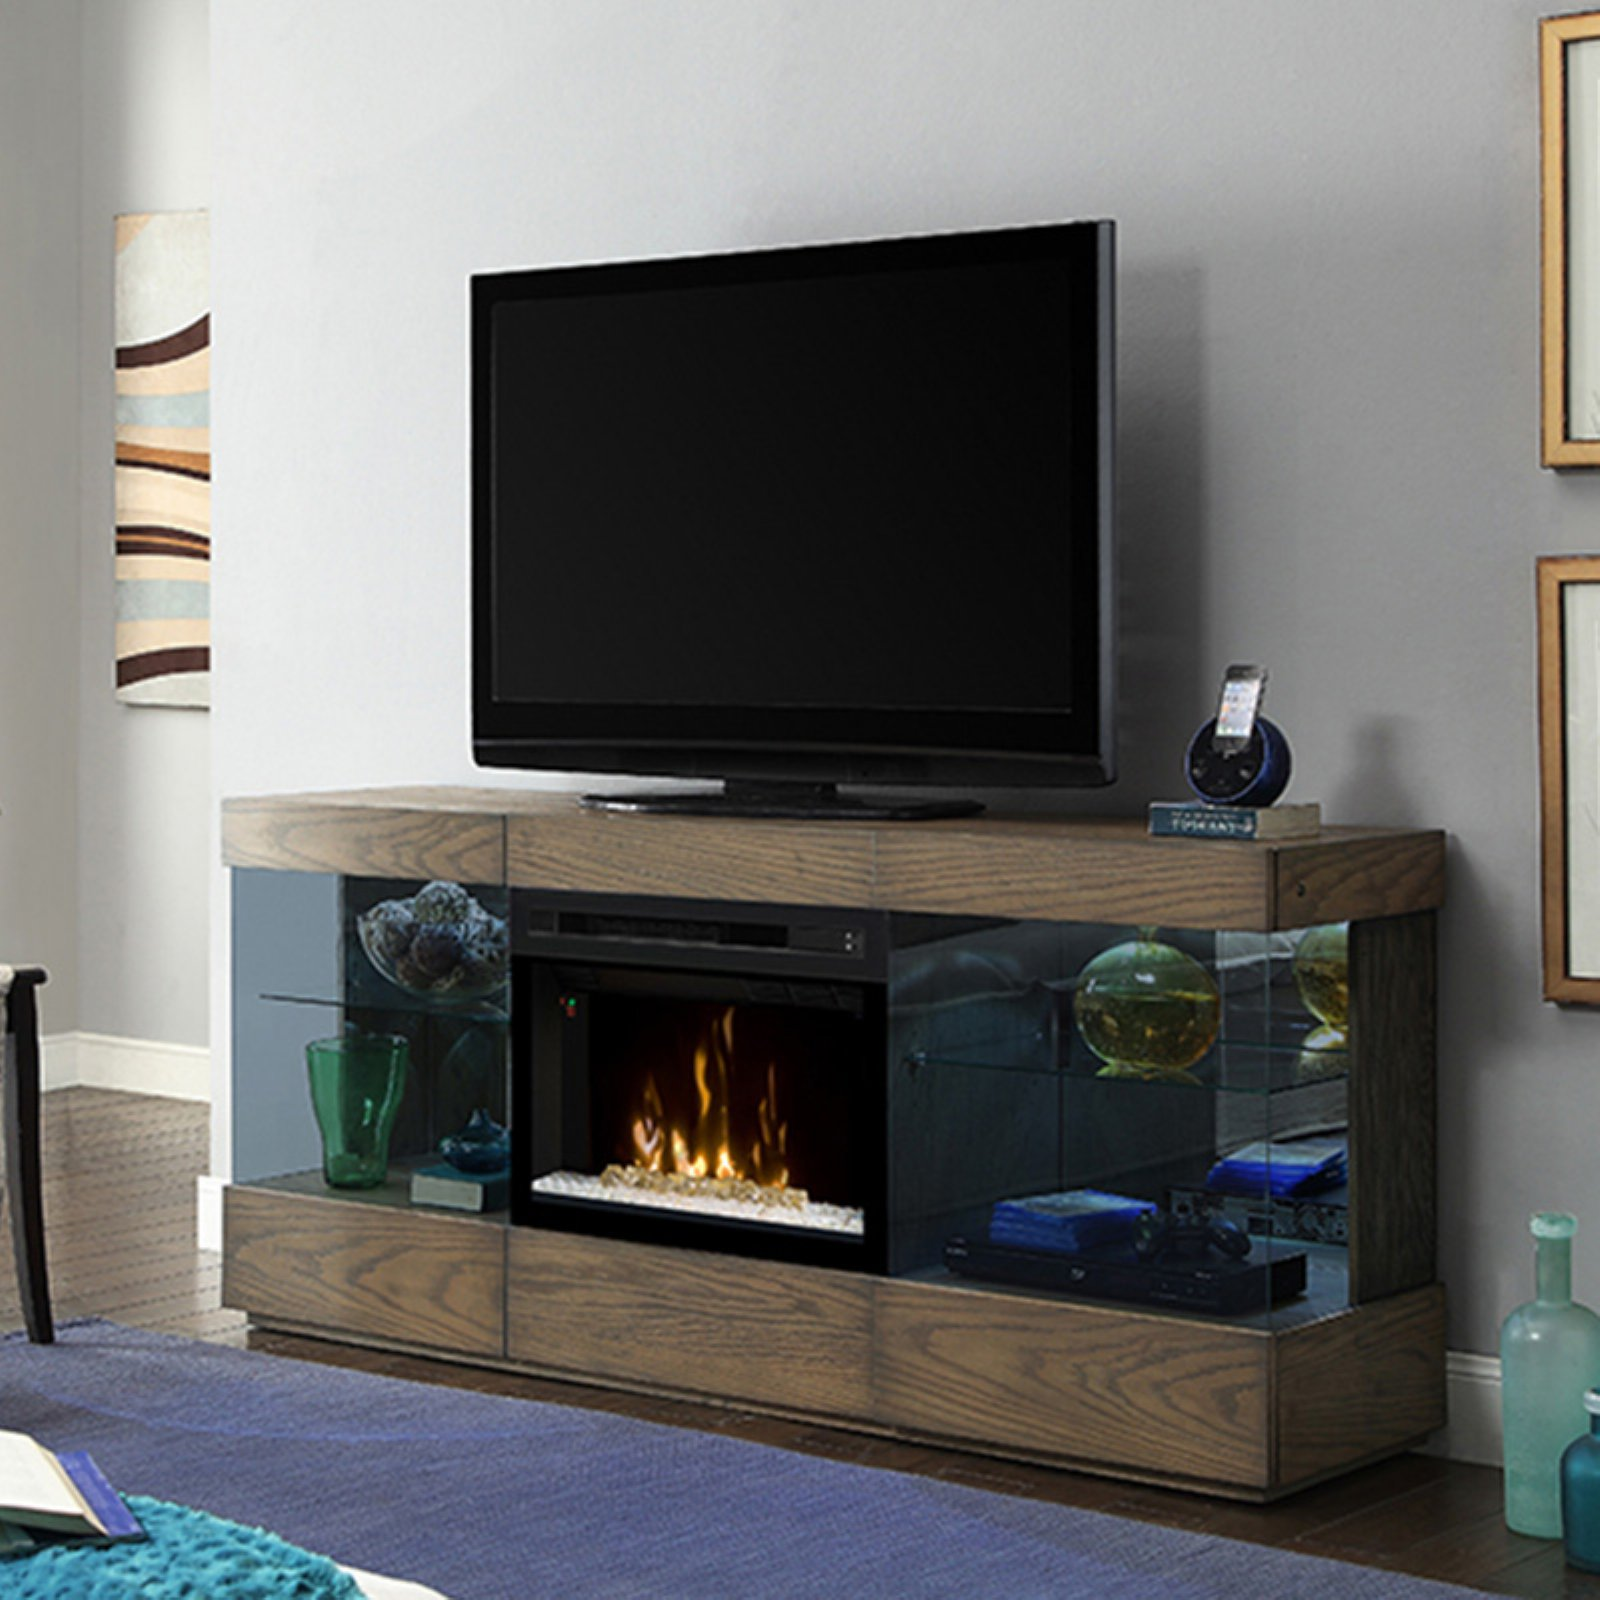 "Dimplex Axel Media Console Electric Fireplace With Glass Ember Bed for TVs up to 70"", Raked Sand"